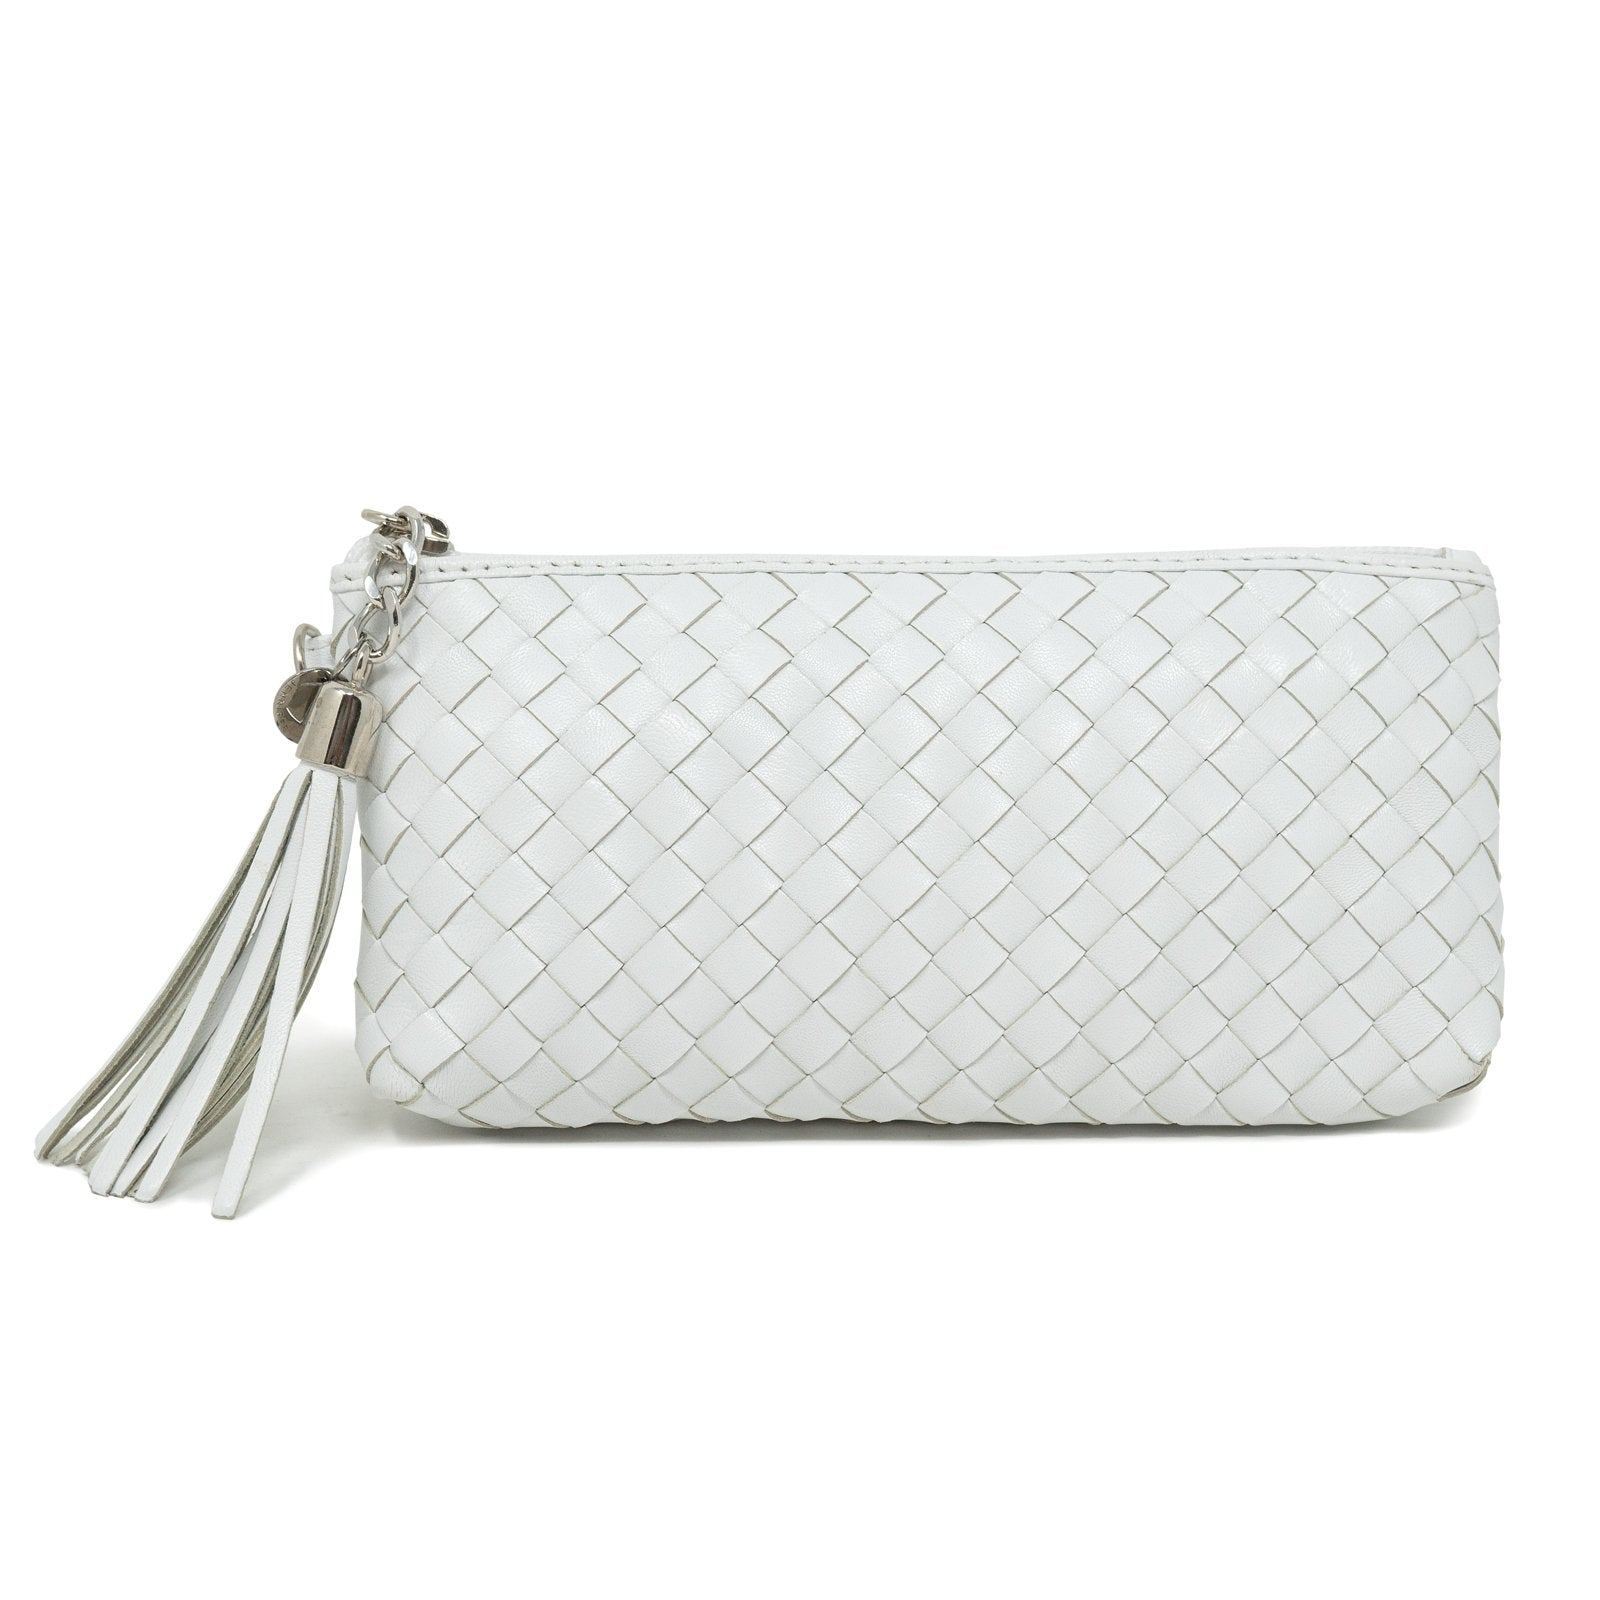 Women Intrecciato Leather Small Soft Pouch White Intreccio Quadro - Jennifer Tattanelli